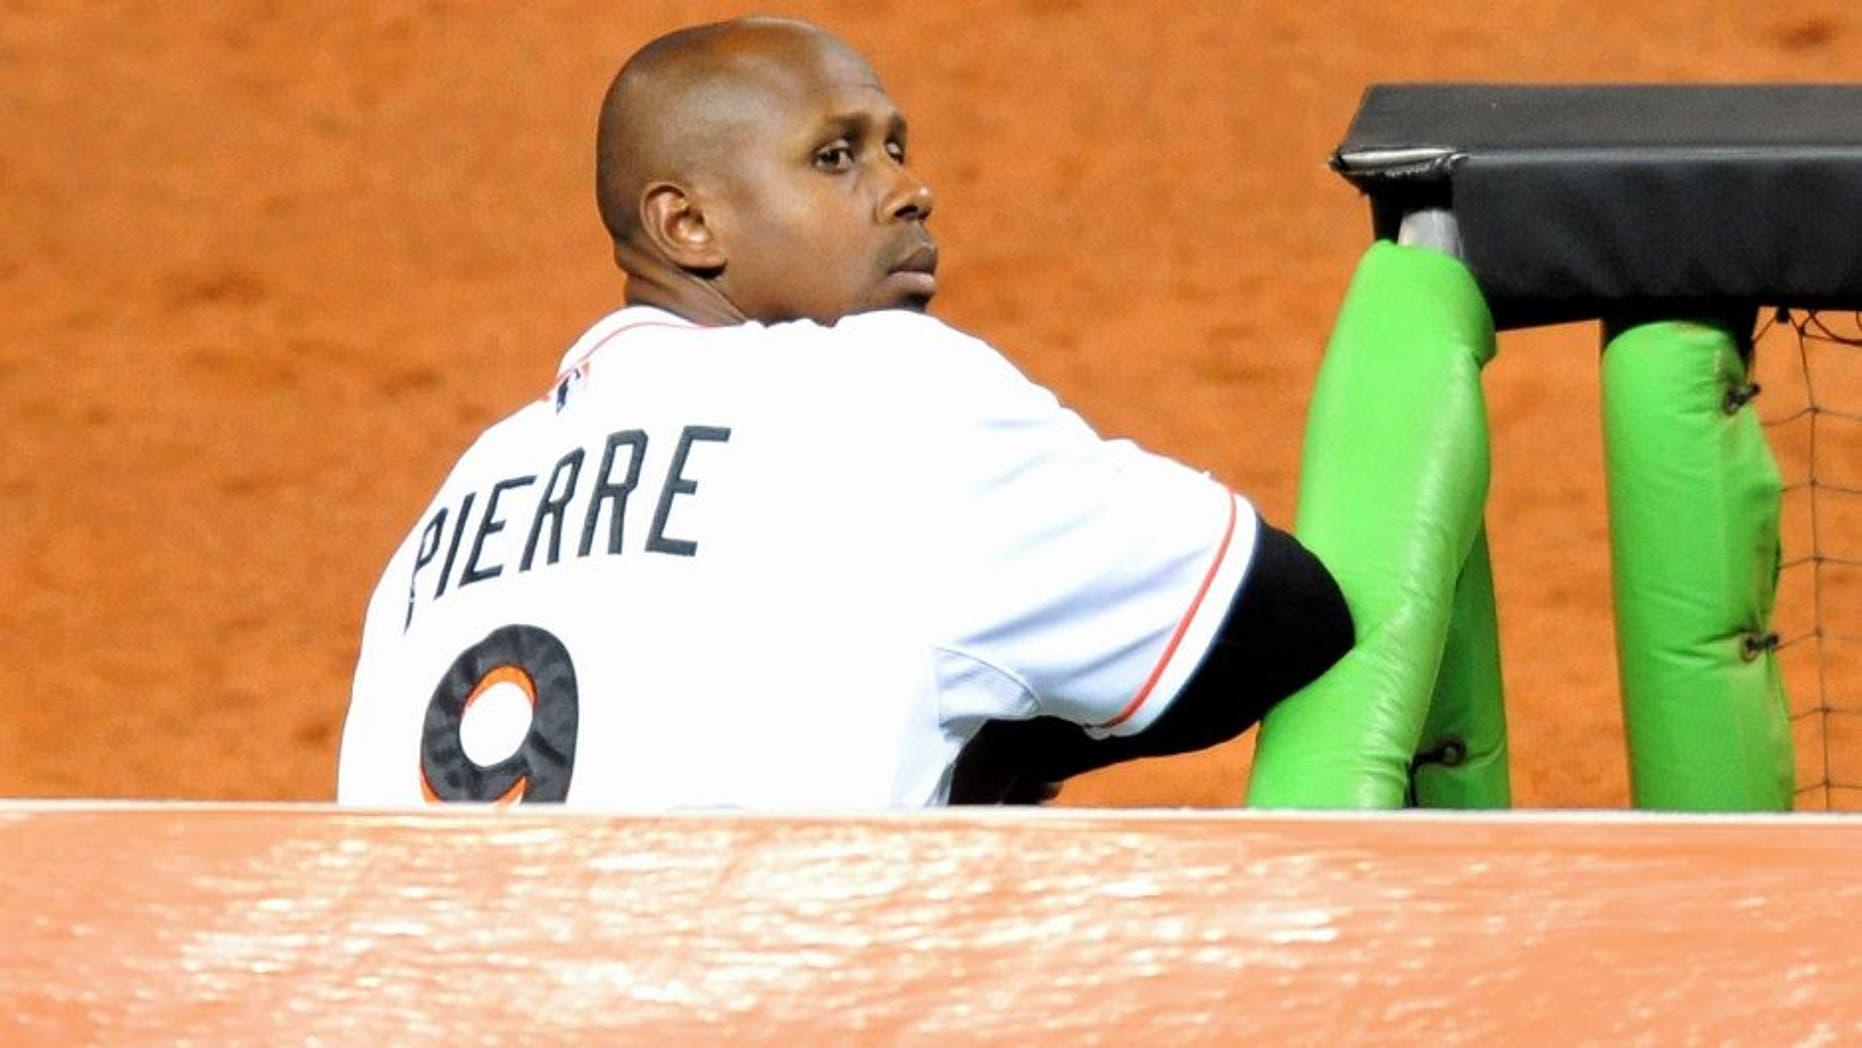 Sep 9, 2013; Miami, FL, USA; Miami Marlins left fielder Juan Pierre (9) looks on from the dugout during the third inning against the Atlanta Braves at Marlins Park. Mandatory Credit: Steve Mitchell-USA TODAY Sports